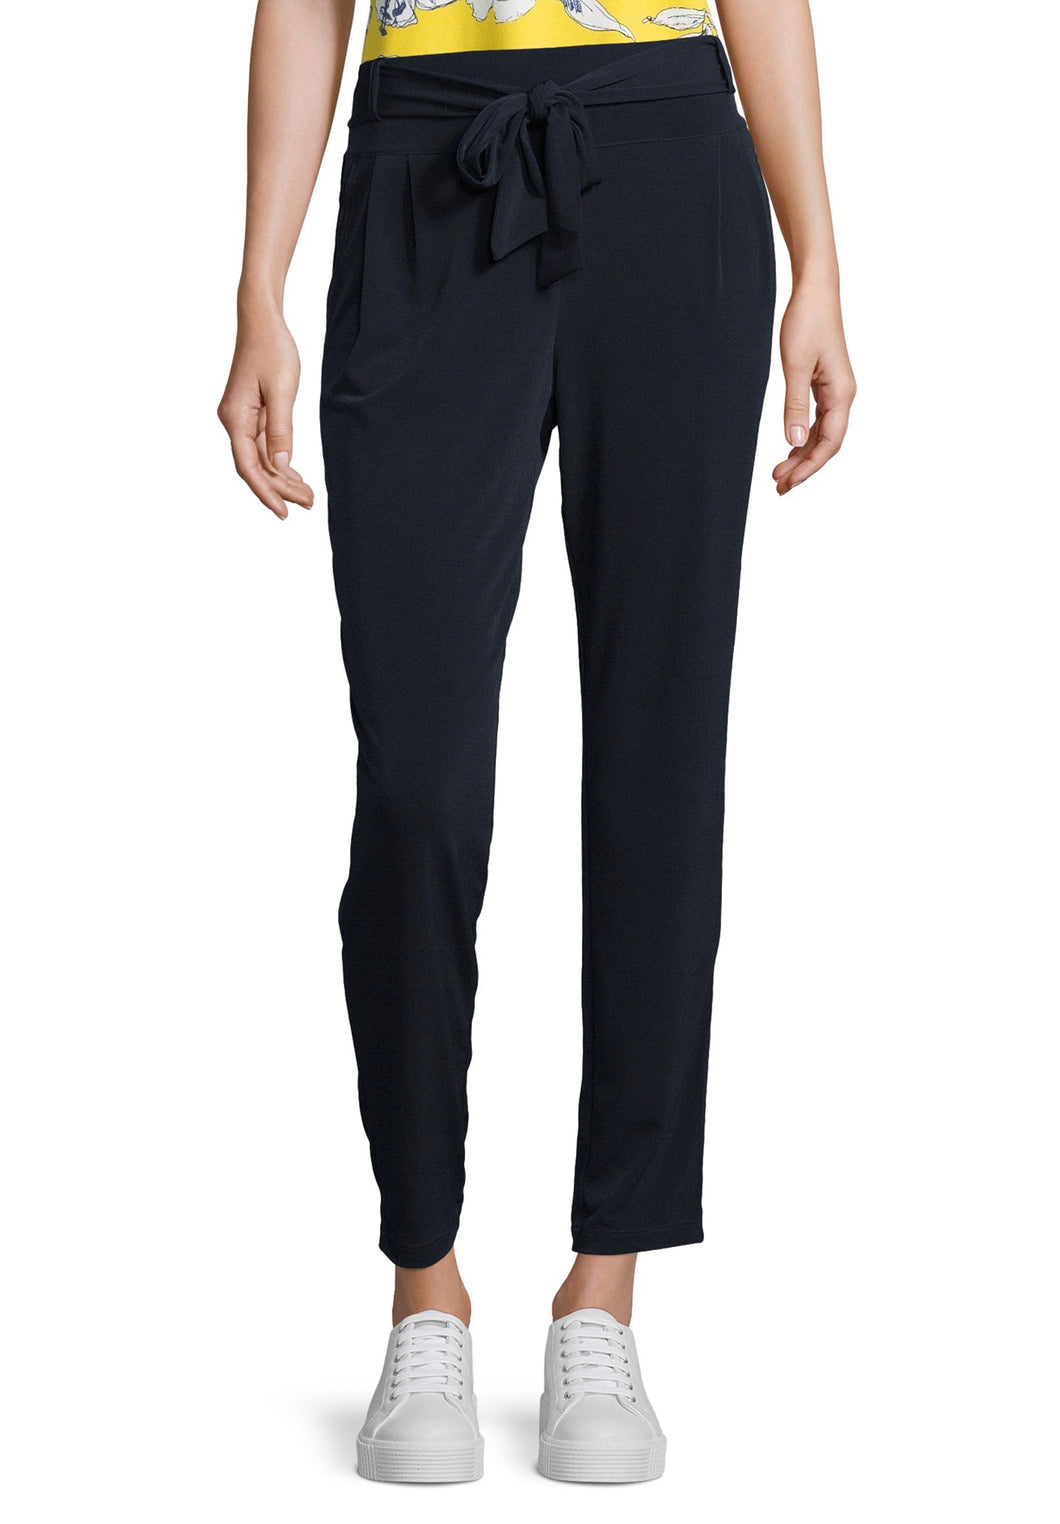 Betty Barclay Trousers - 6048/1198 - Navy